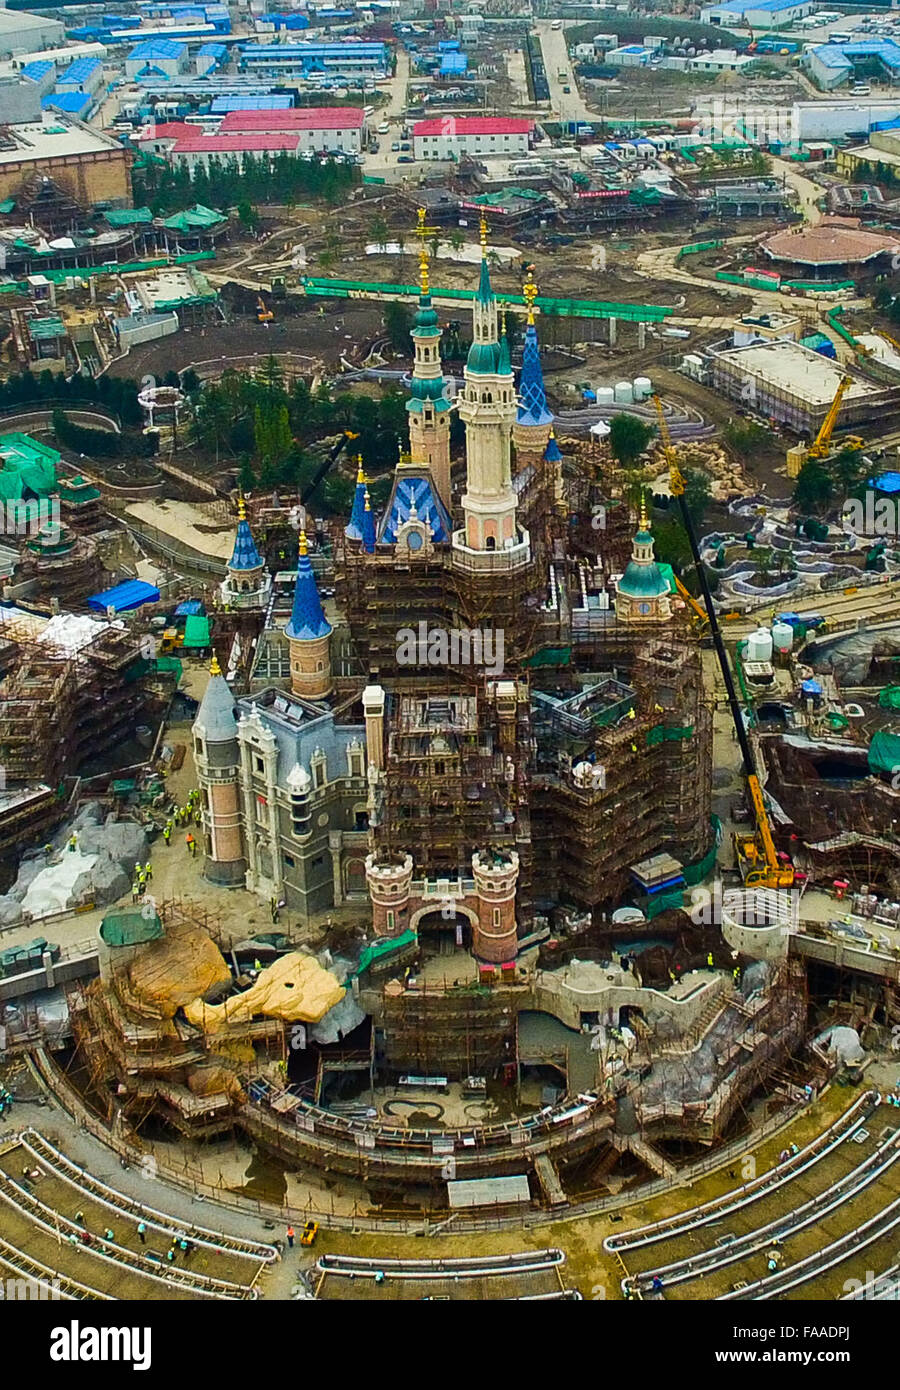 Shanghai. 9th Oct, 2015. An aerial photo taken on Oct. 9, 2015 shows the Disney Park in Shanghai, east China. © Stock Photo